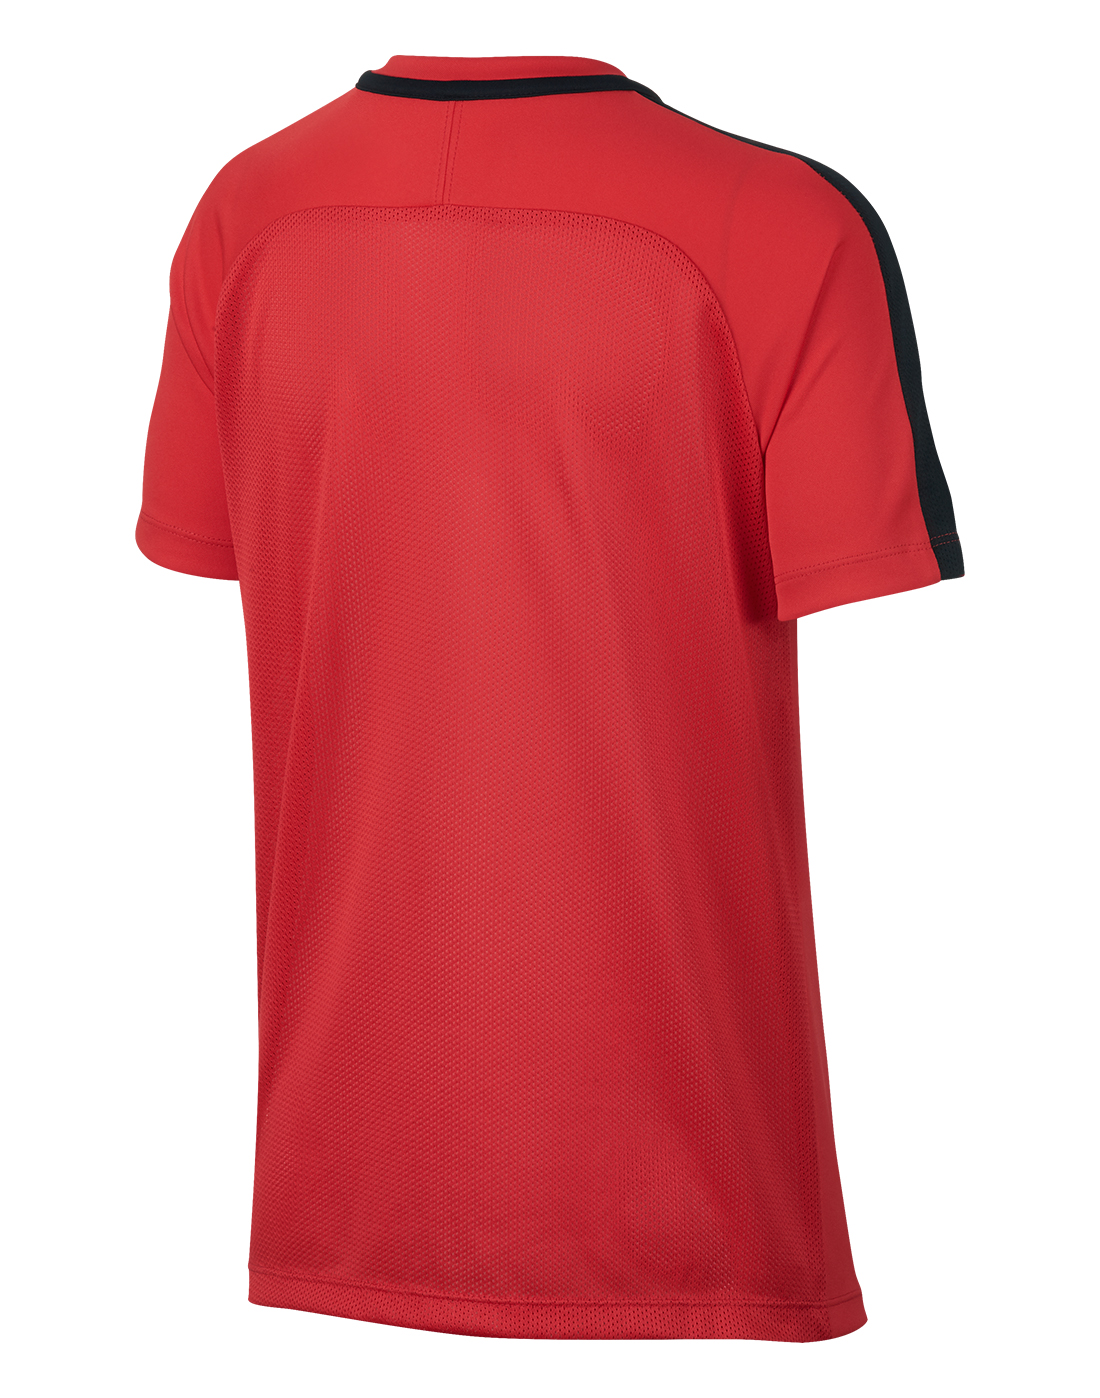 75ef0db20204 Boy s Red Nike Academy T-Shirt